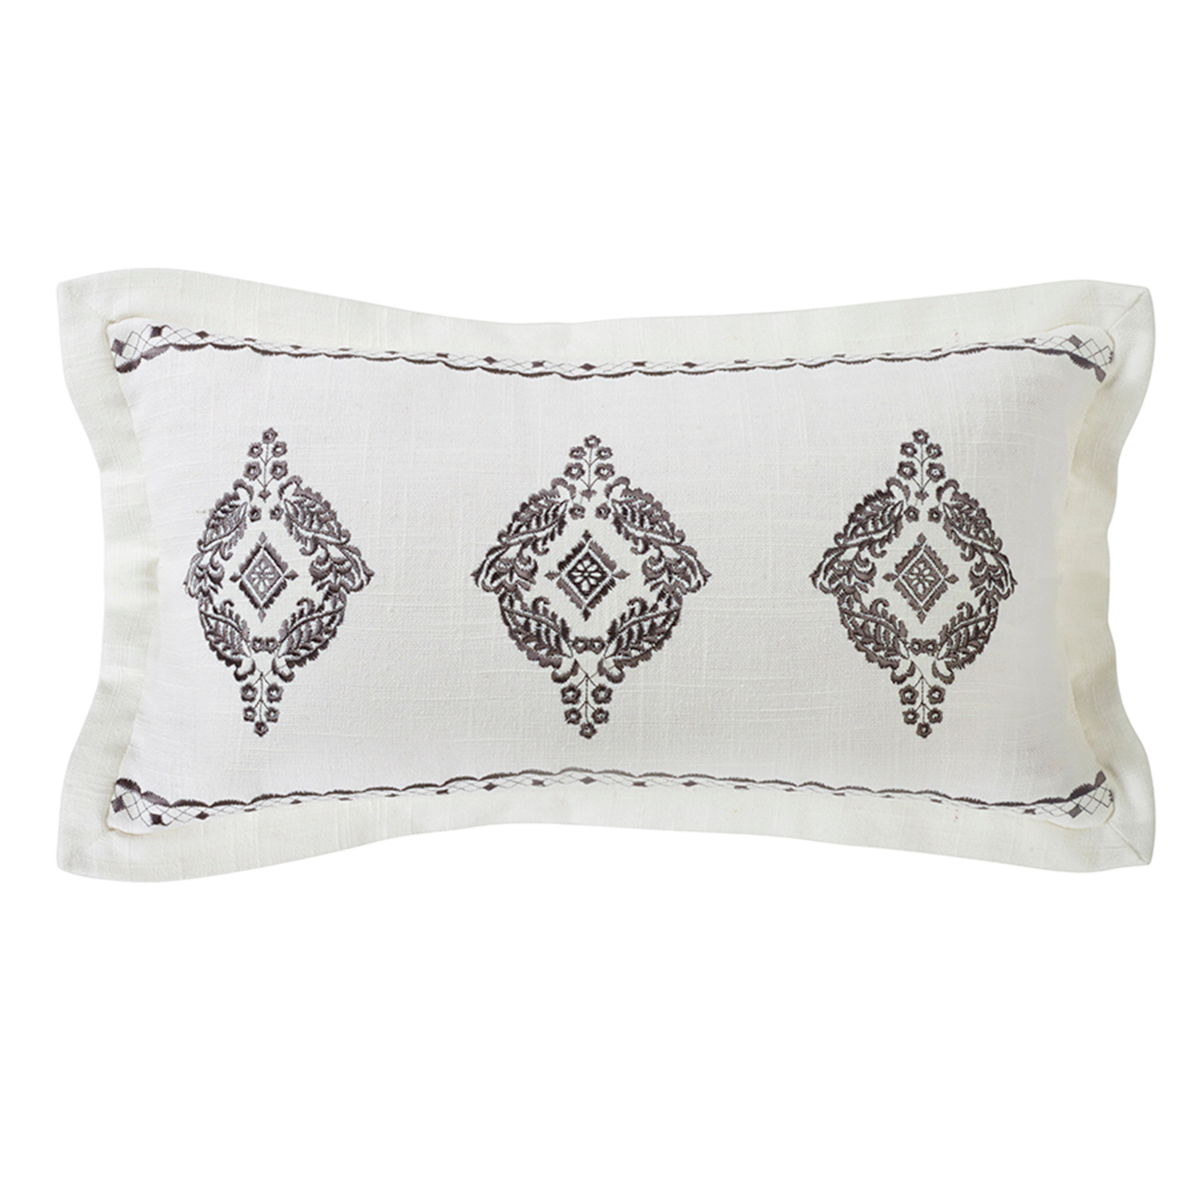 FB4900P5  Charlotte Oblong Embroidered Lace Pillow - ThunderHorseCabin.com